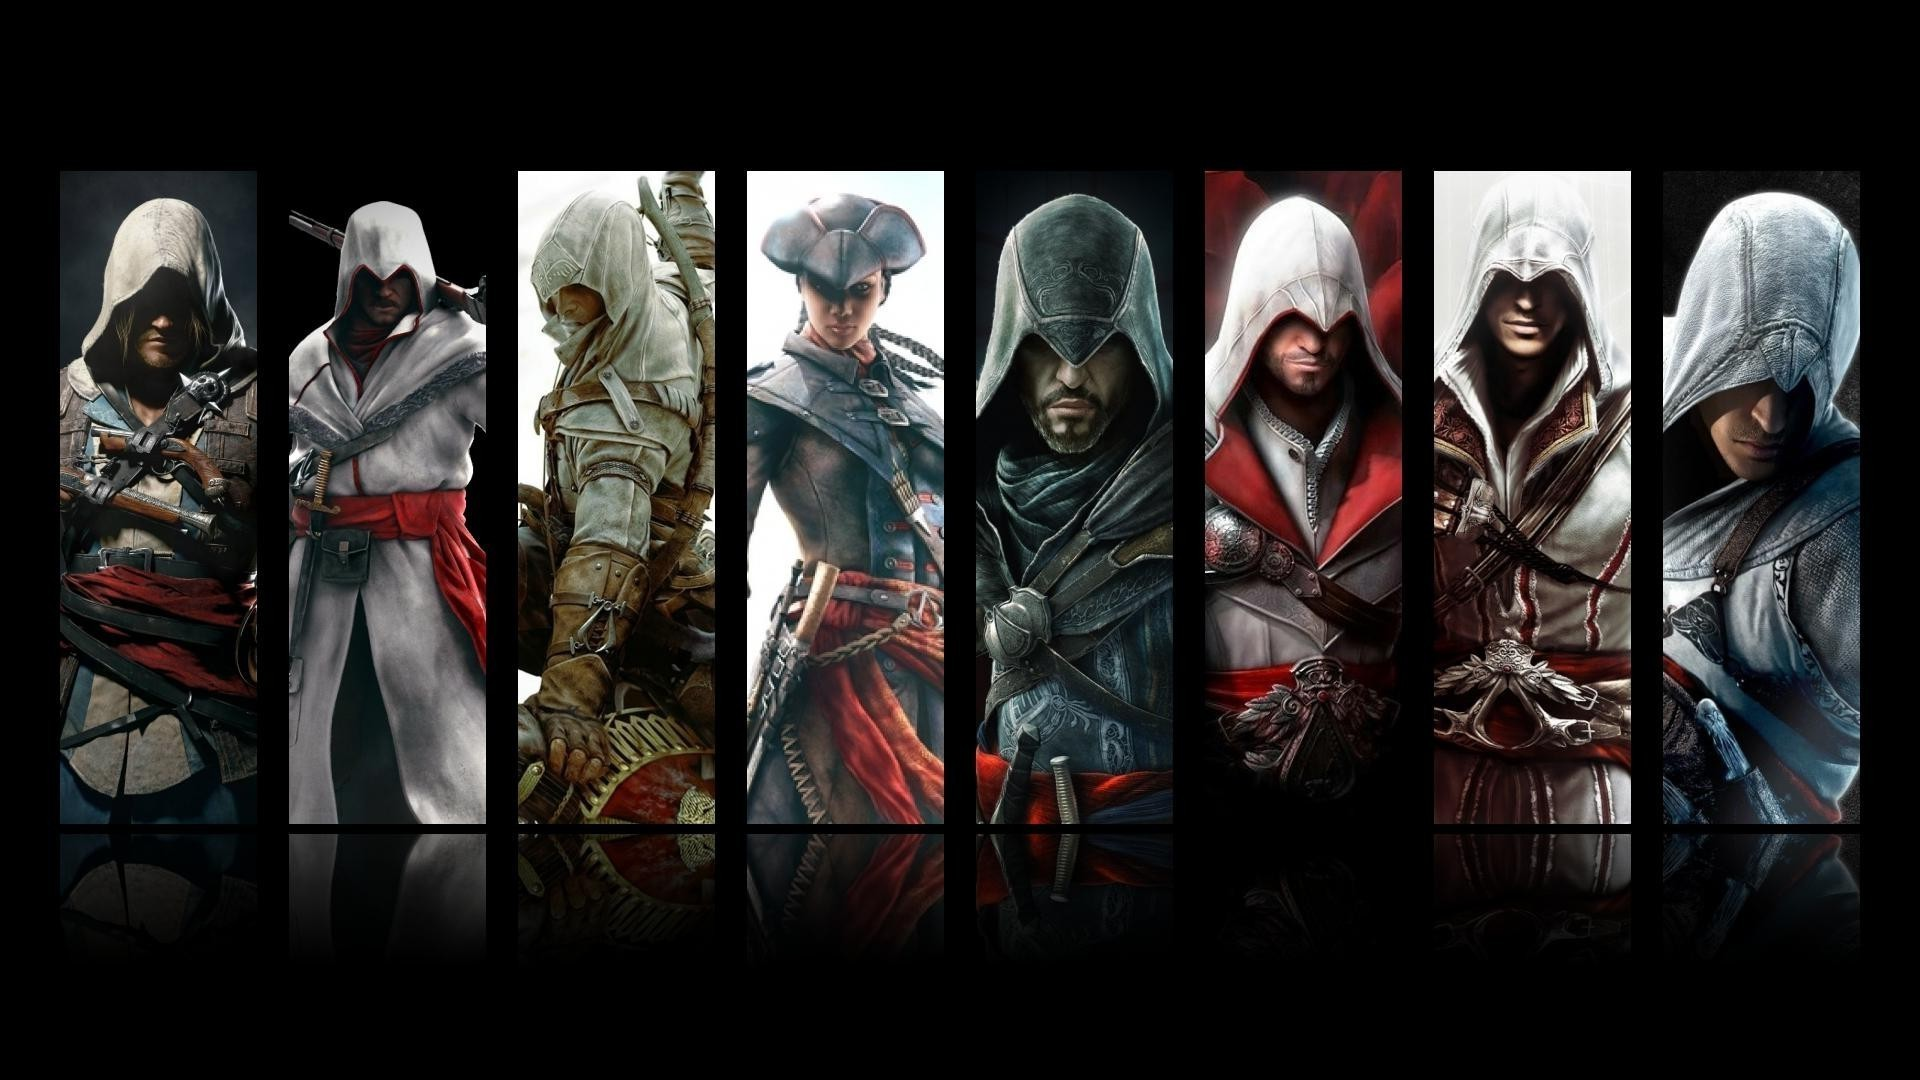 1920x1080 assassin's creed unity wallpaper Wallpaper